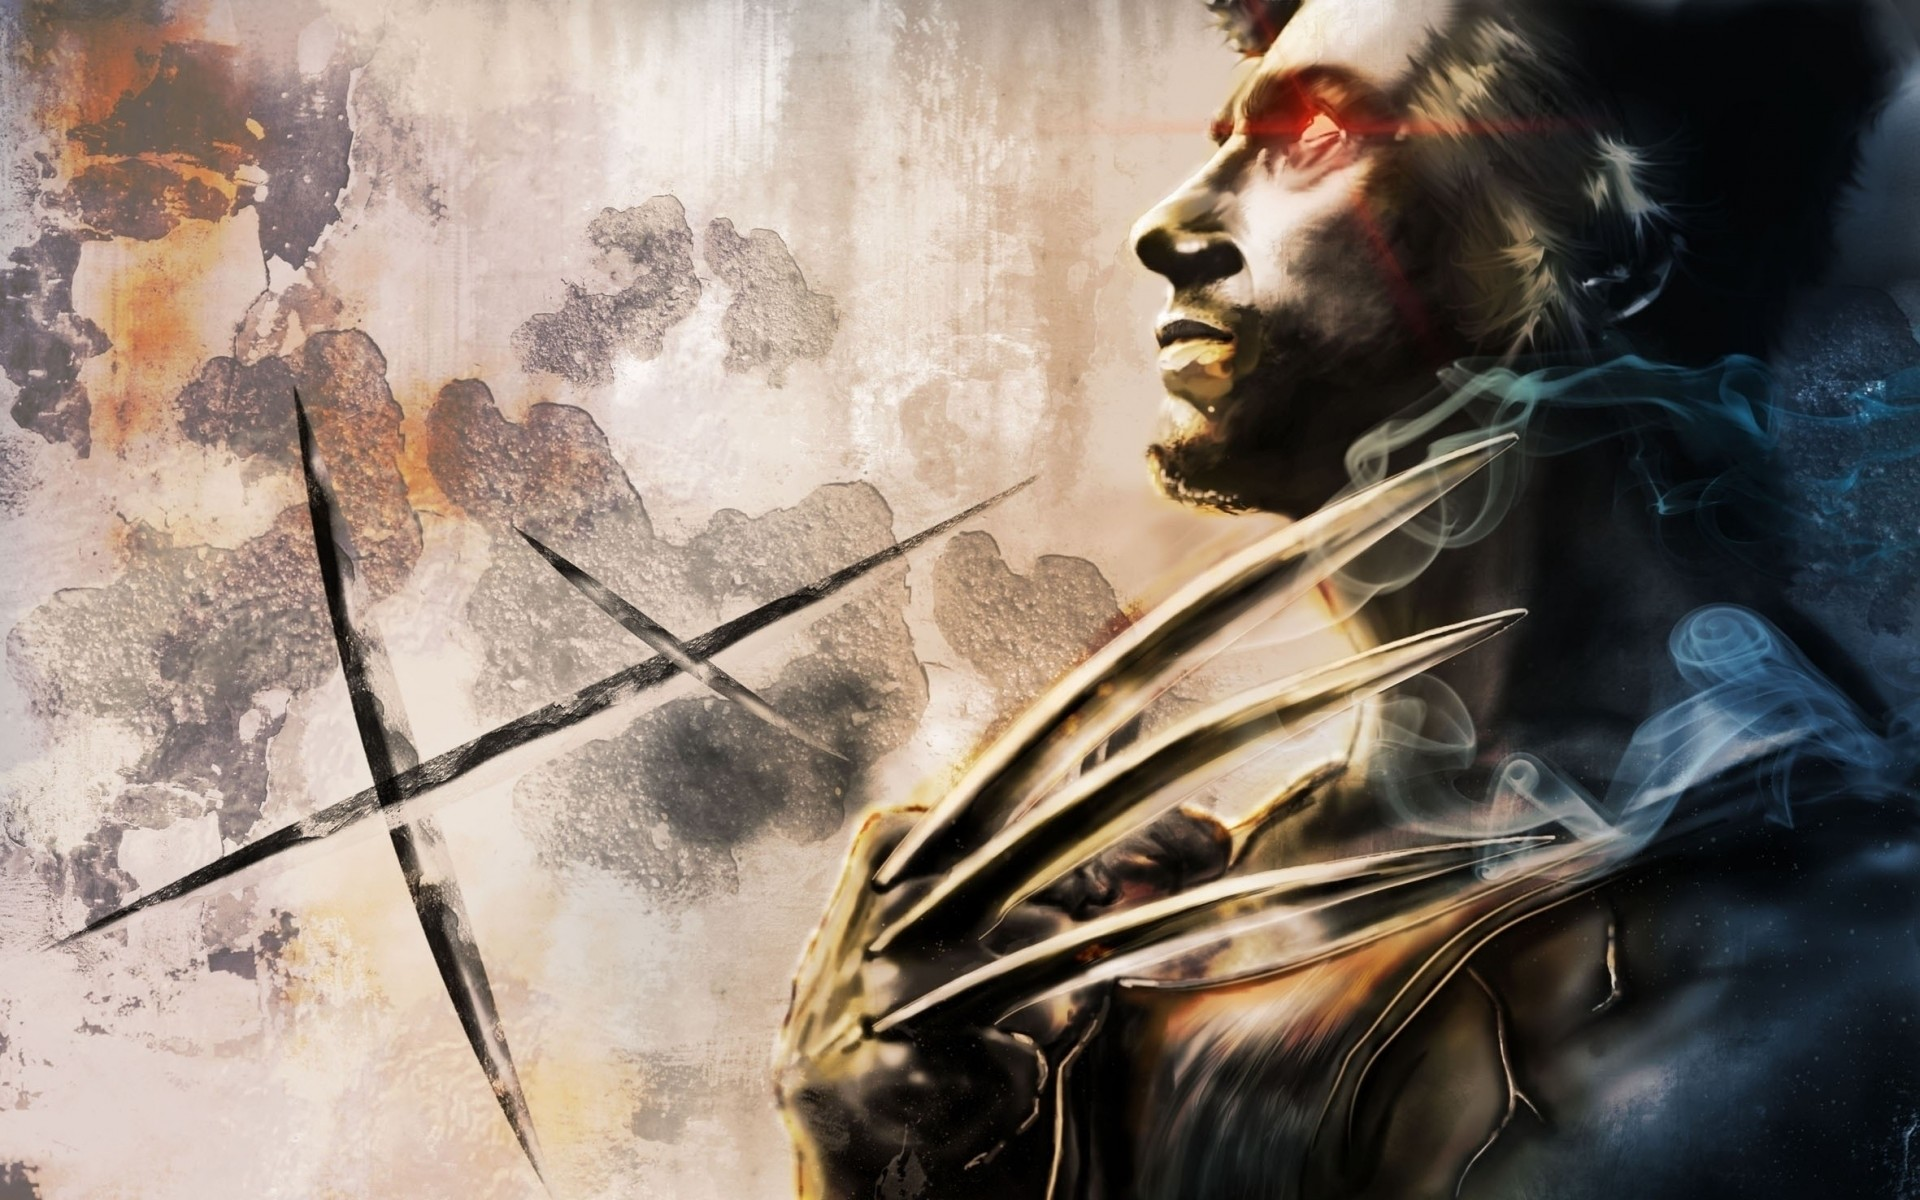 The Wolverine Movie Poster HD desktop wallpaper High × | HD Wallpapers |  Pinterest | Hd wallpaper, Wallpaper and 3d wallpaper